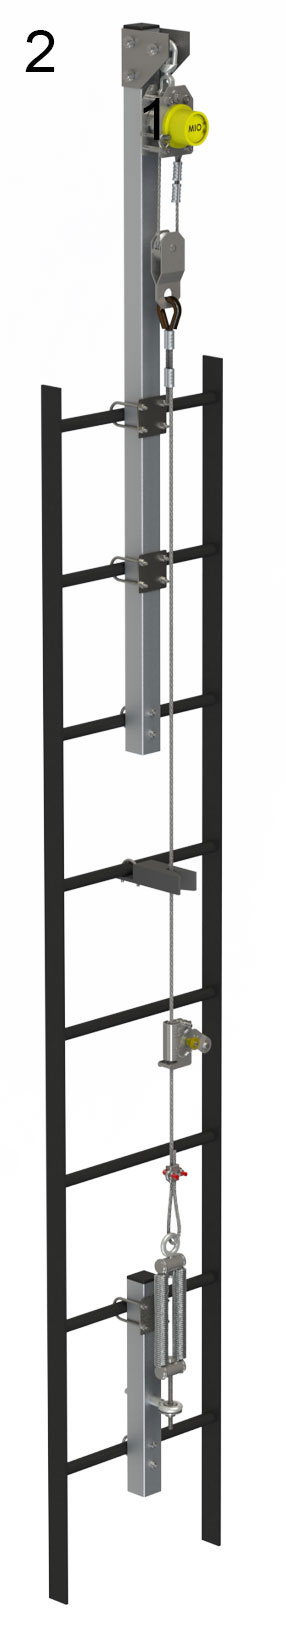 Vertical Cable Ladder D-Right  Safety System